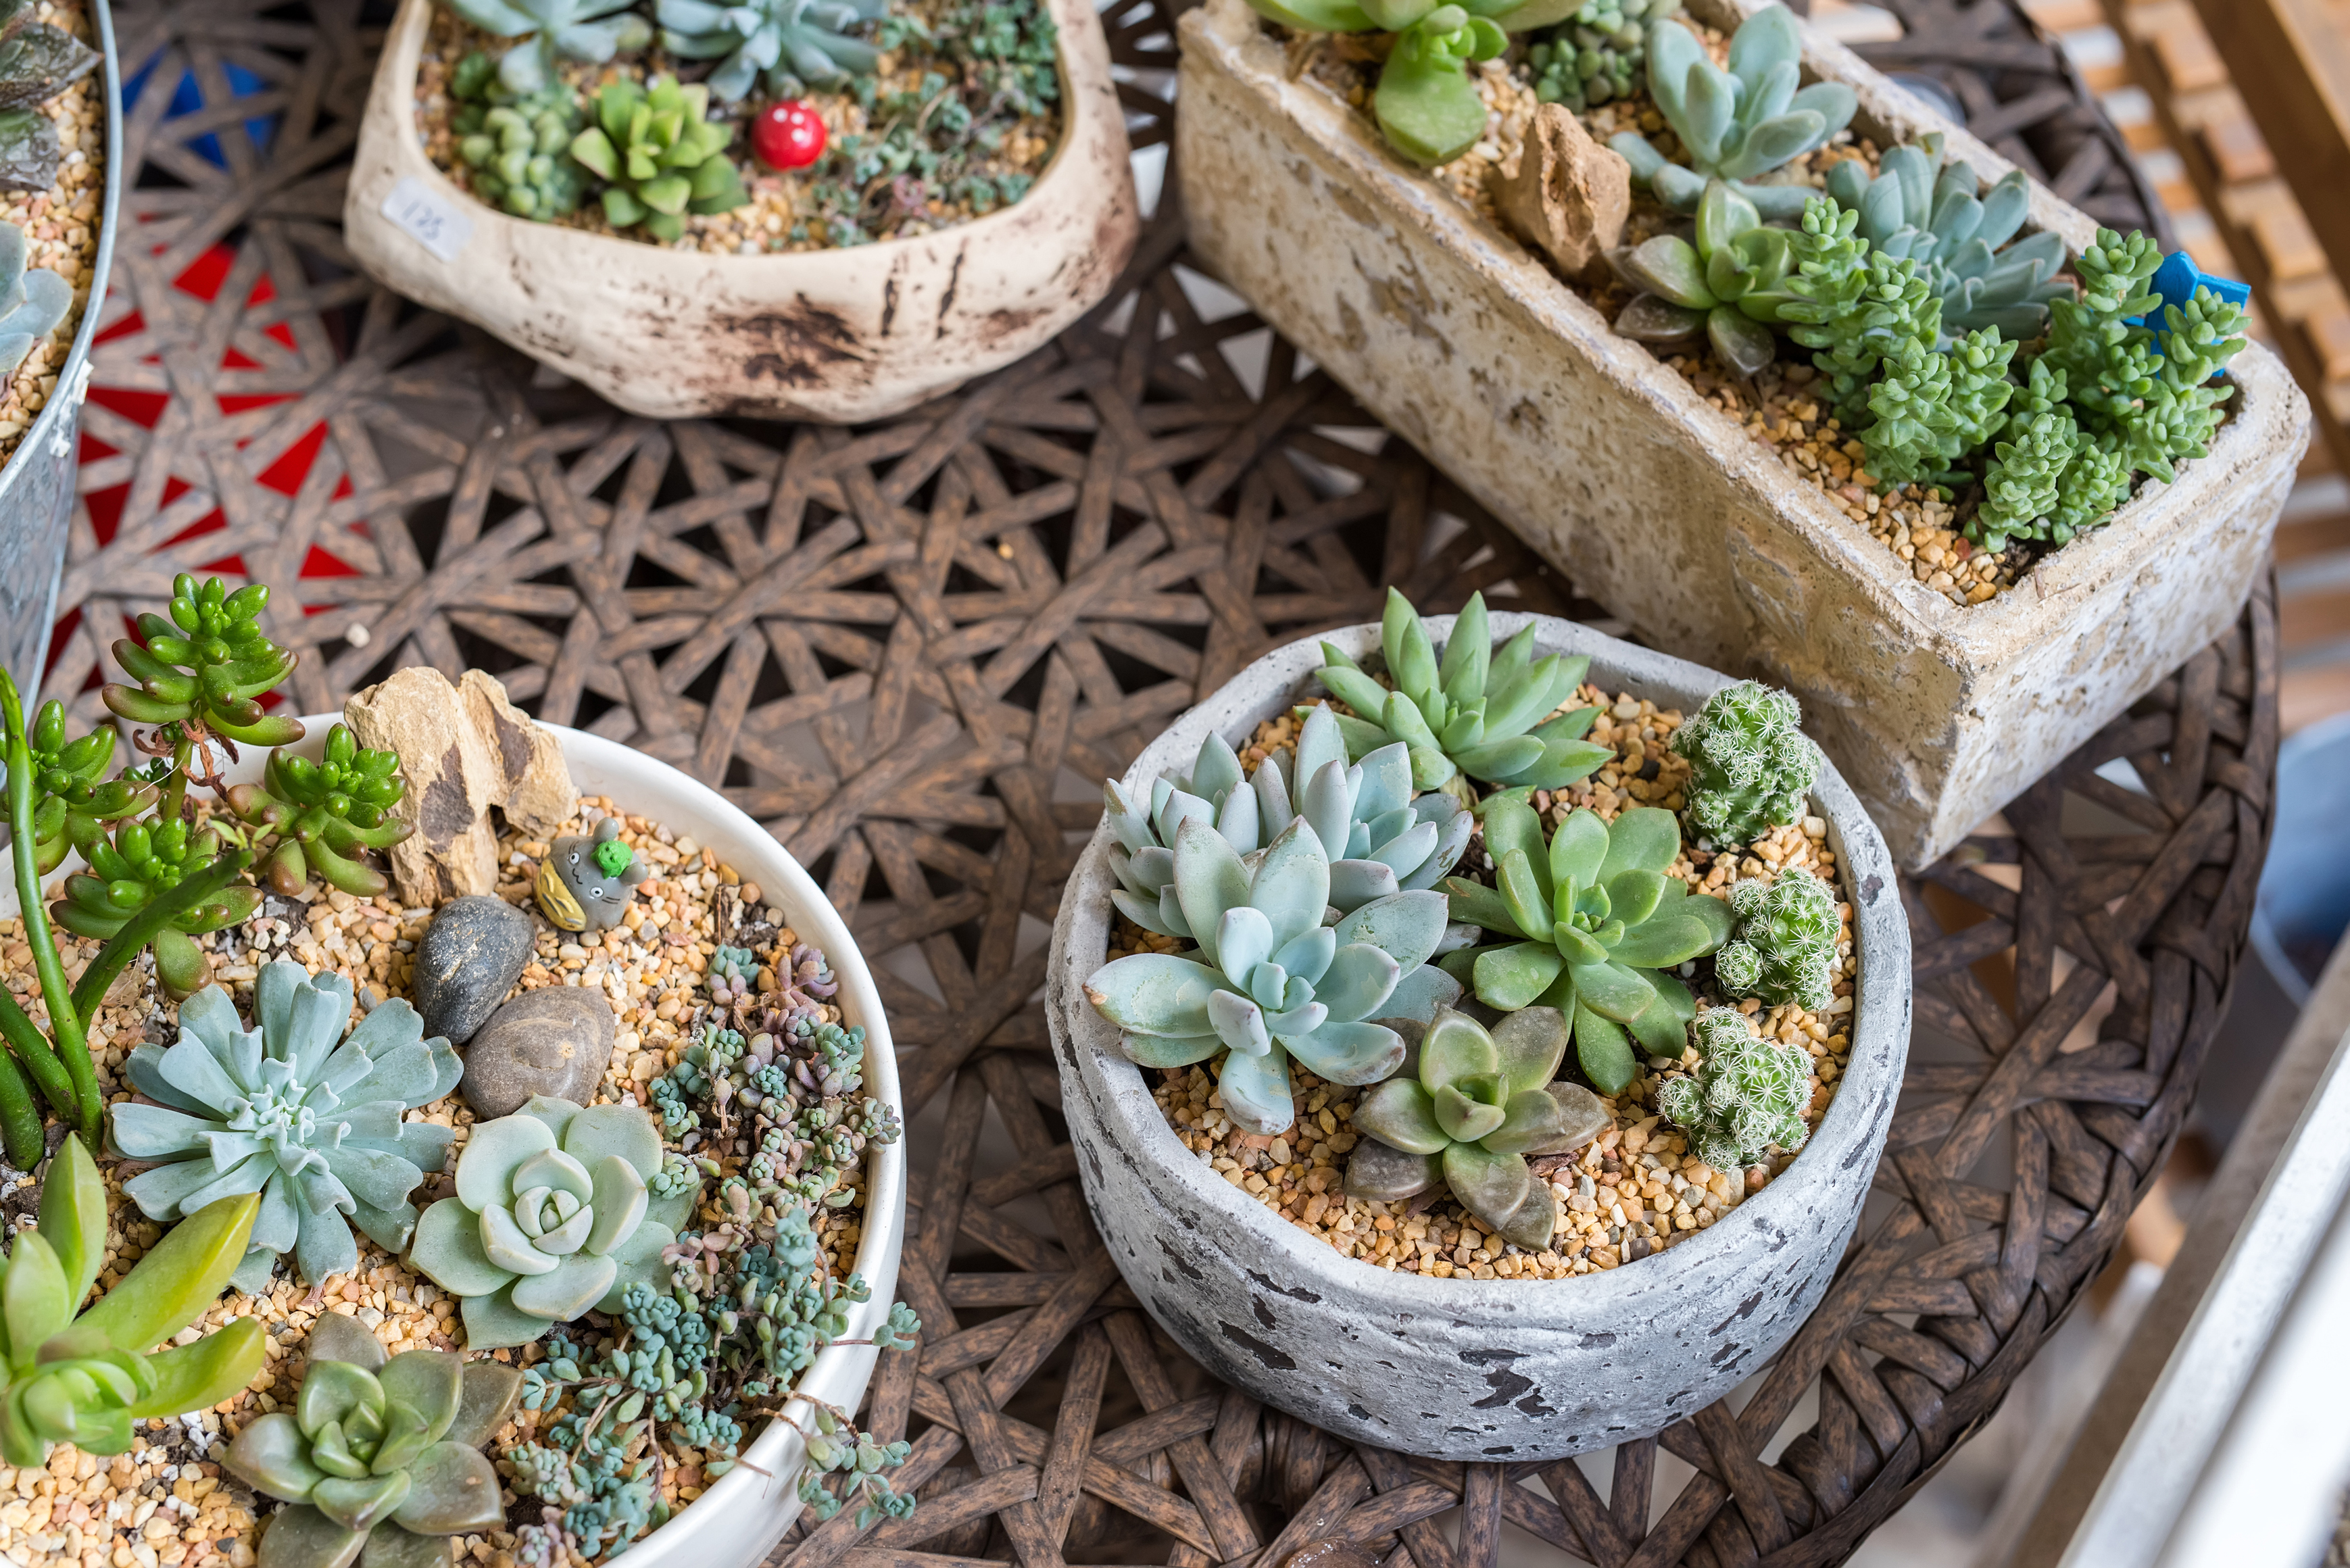 succulents in pots (iStock/PA)